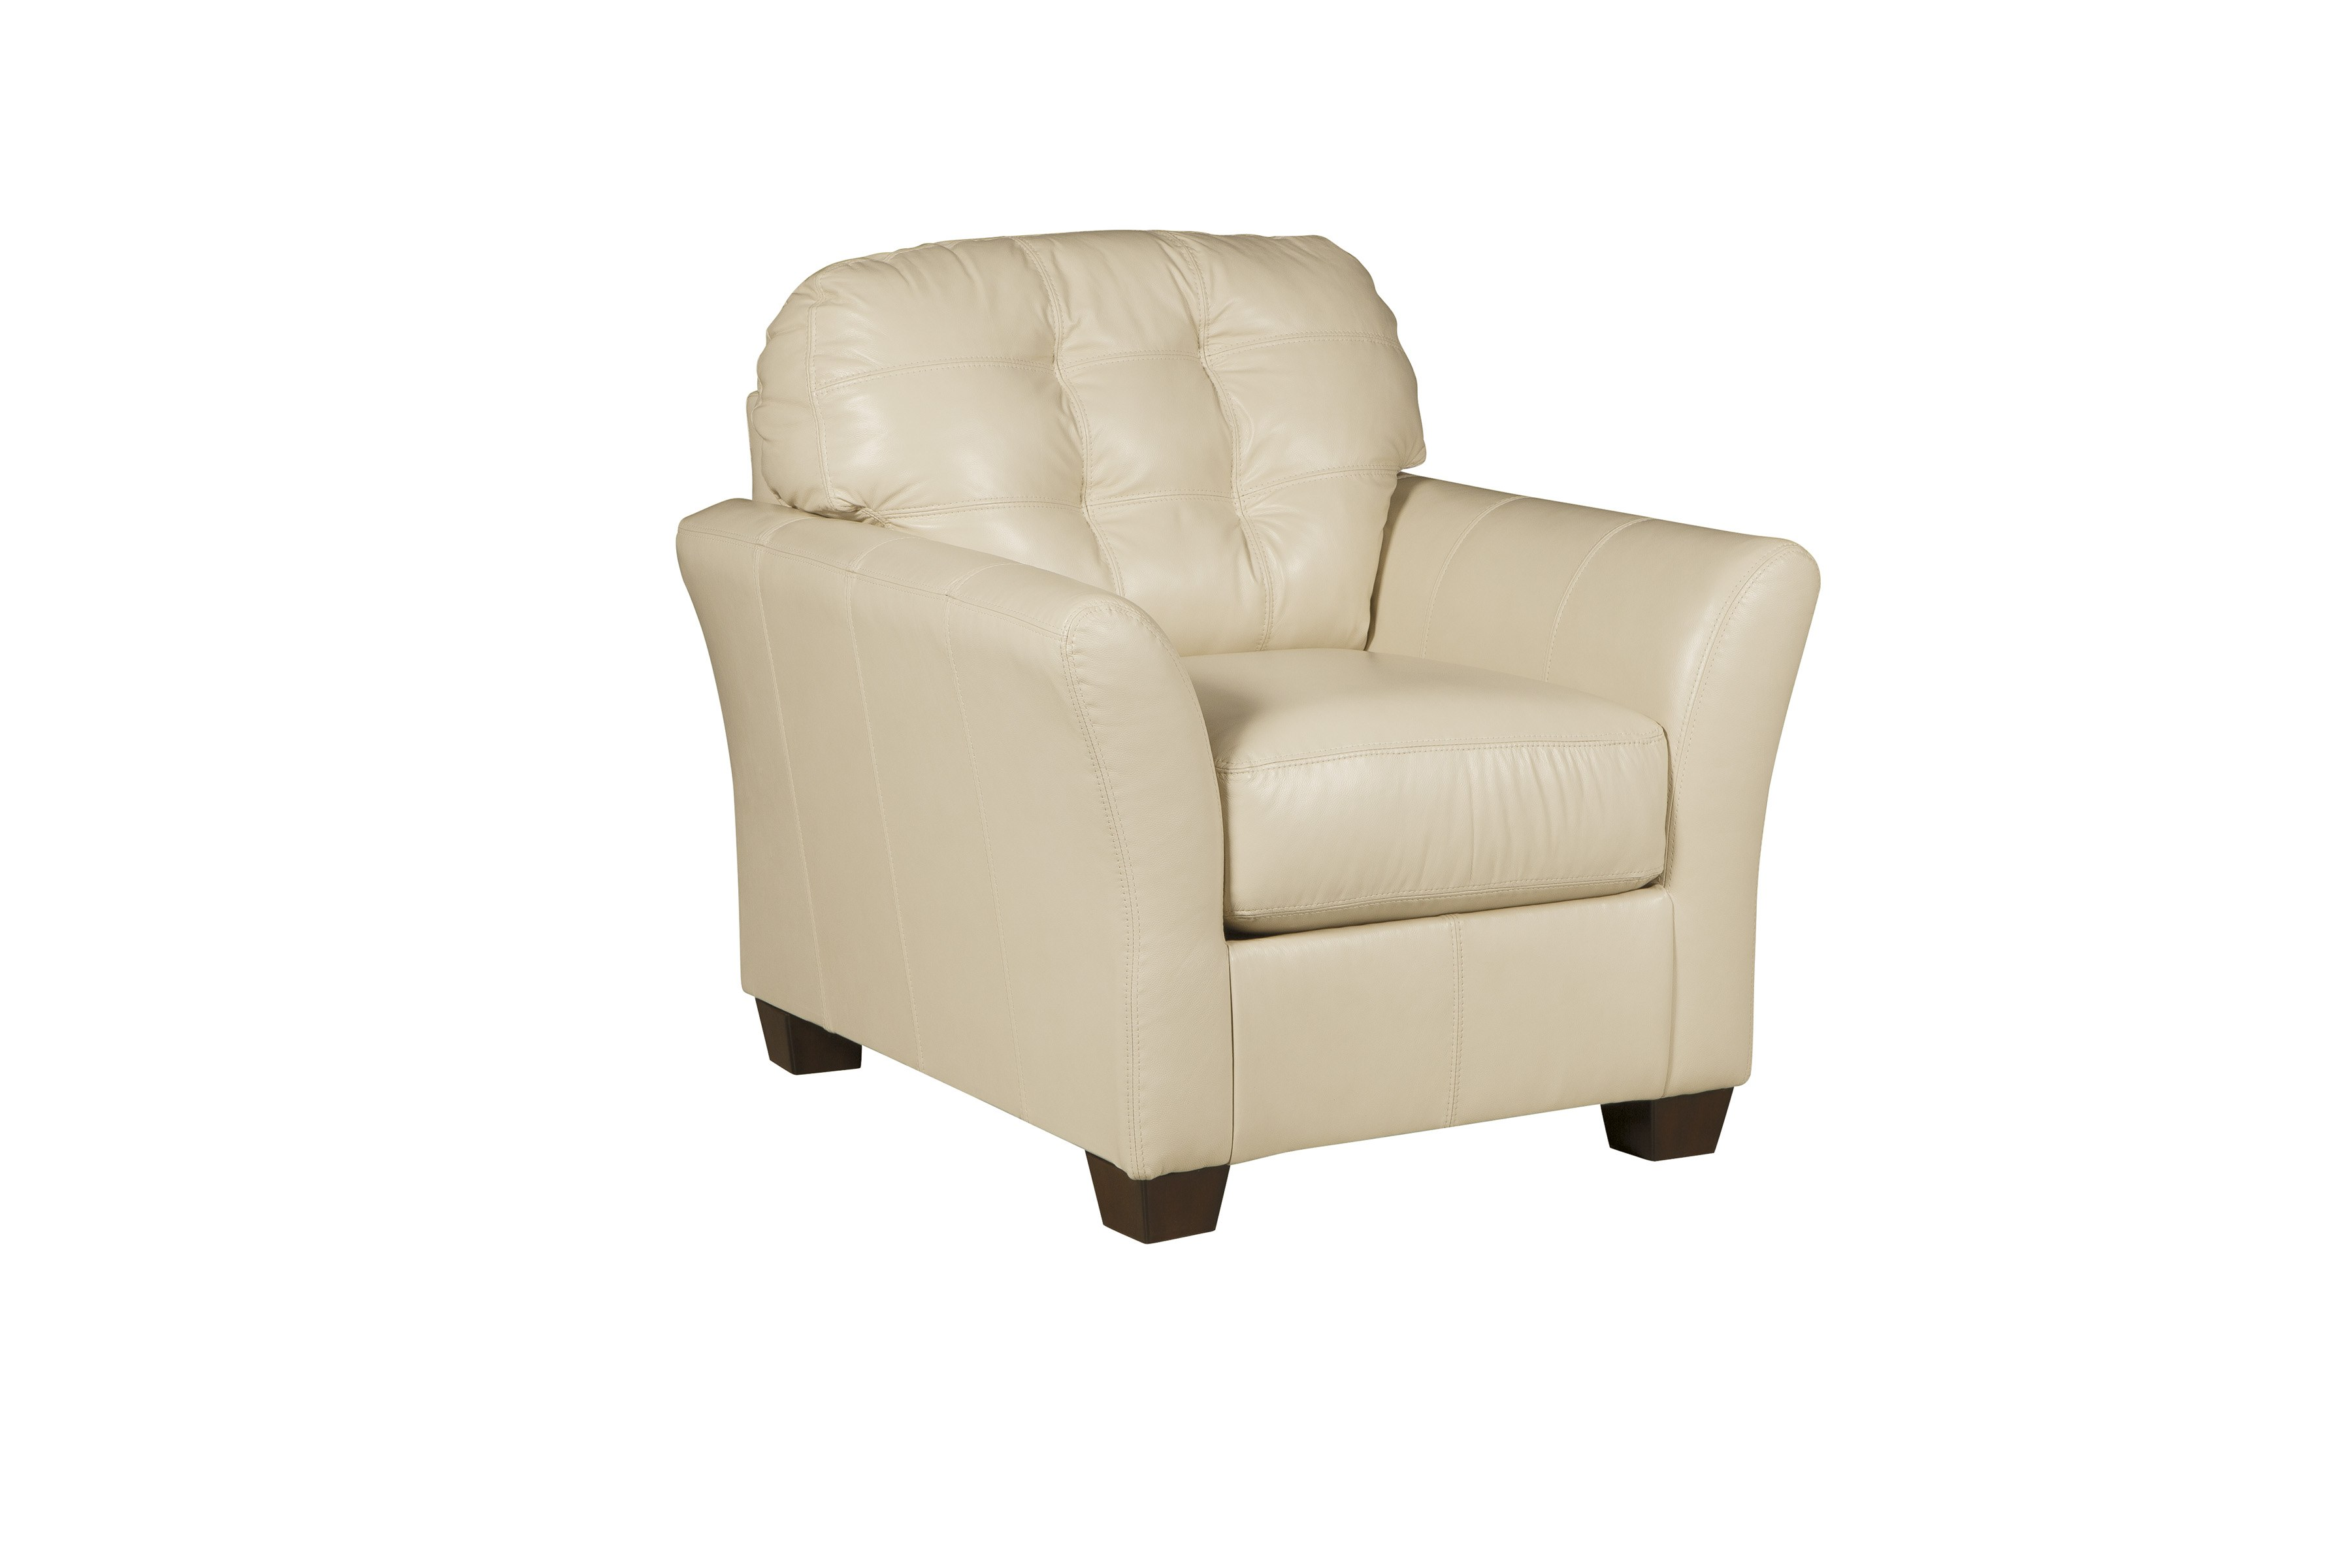 Ashley Furniture Chairs Prices 3600 x 2400